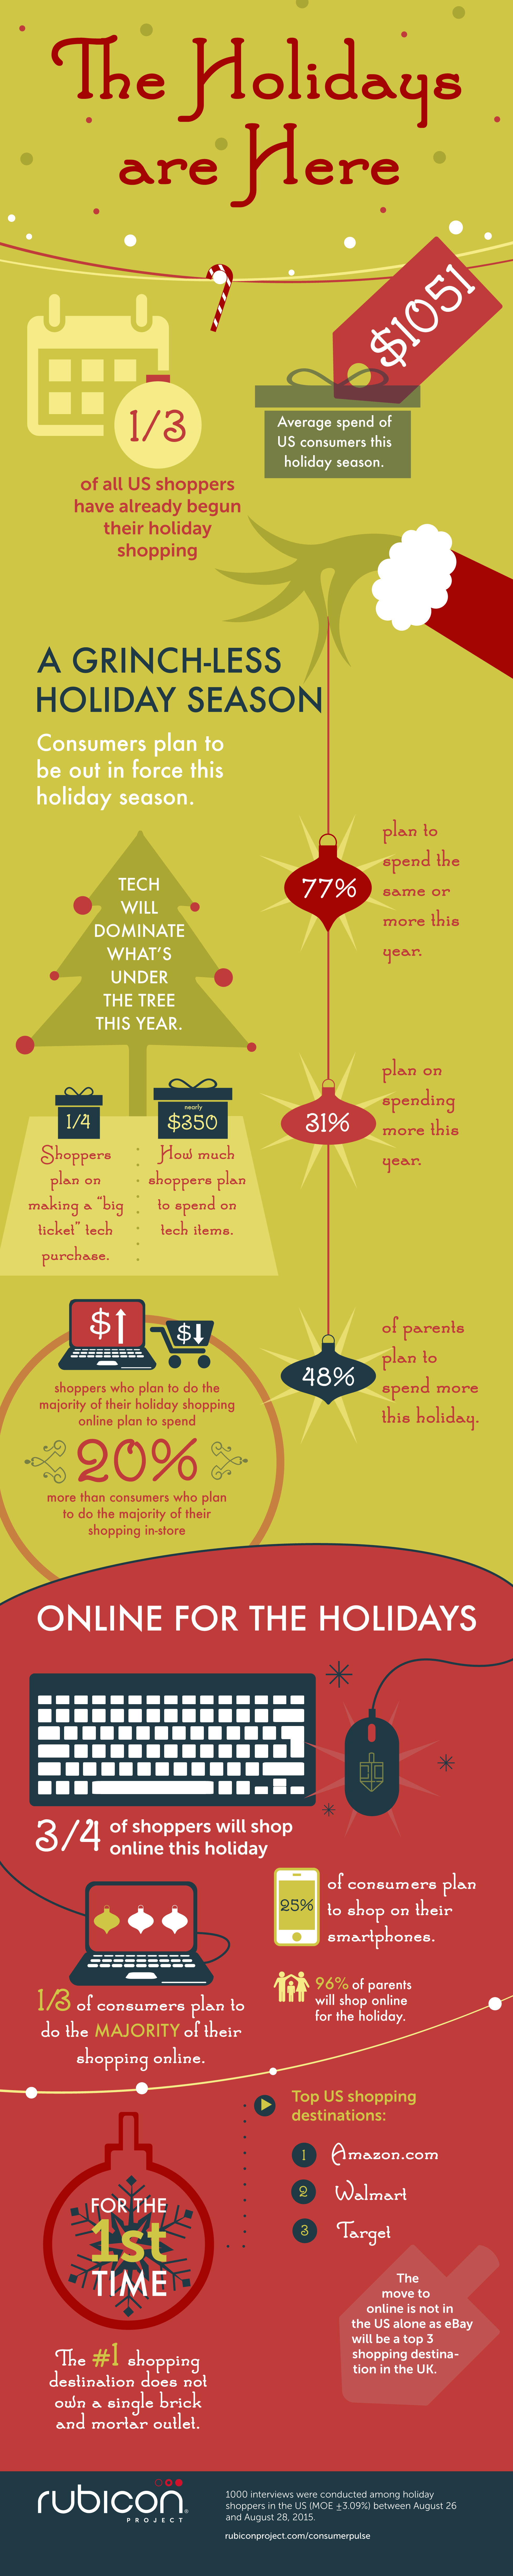 ConsumerPulse2015_HolidaySpend_Infographic_US_v5.png